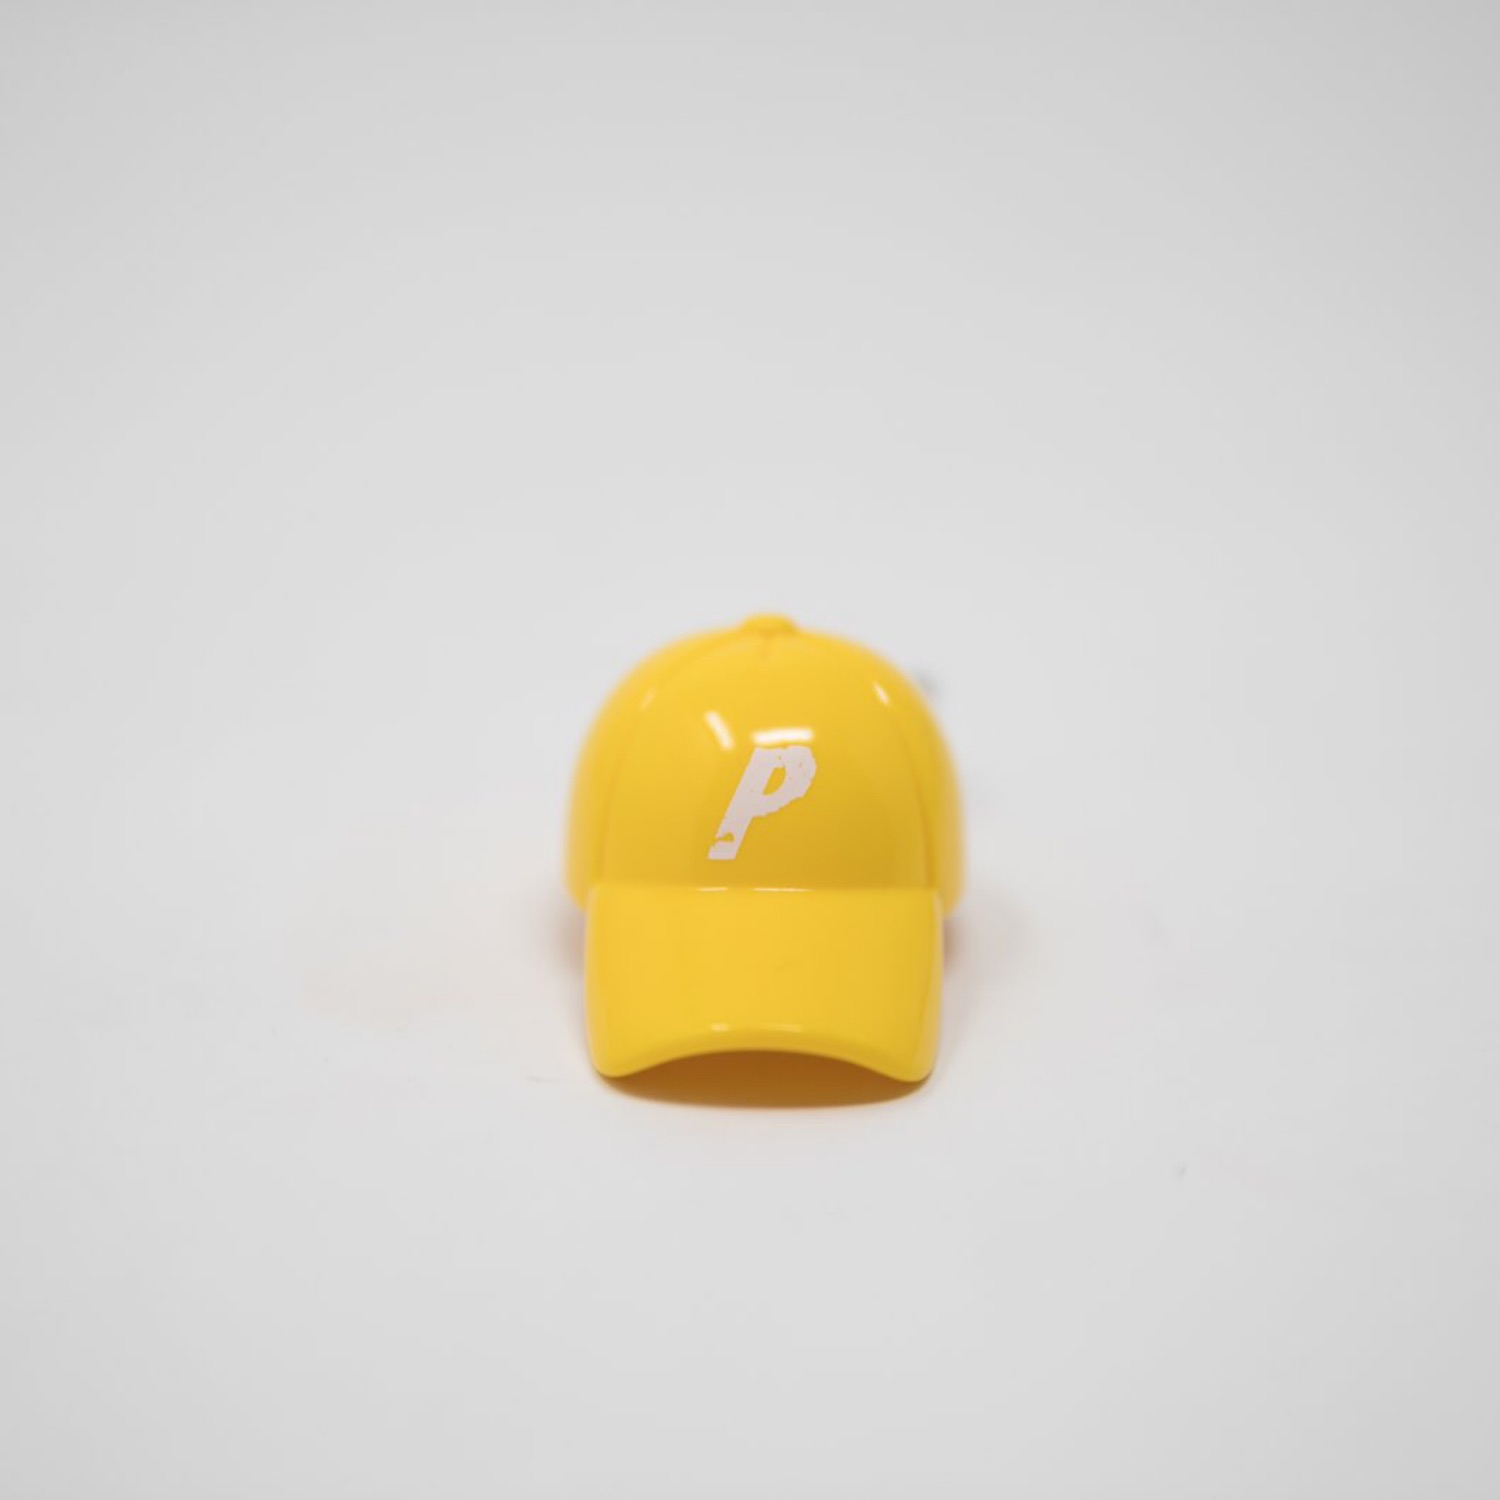 Palace Cap Yellow Keychain (Used)